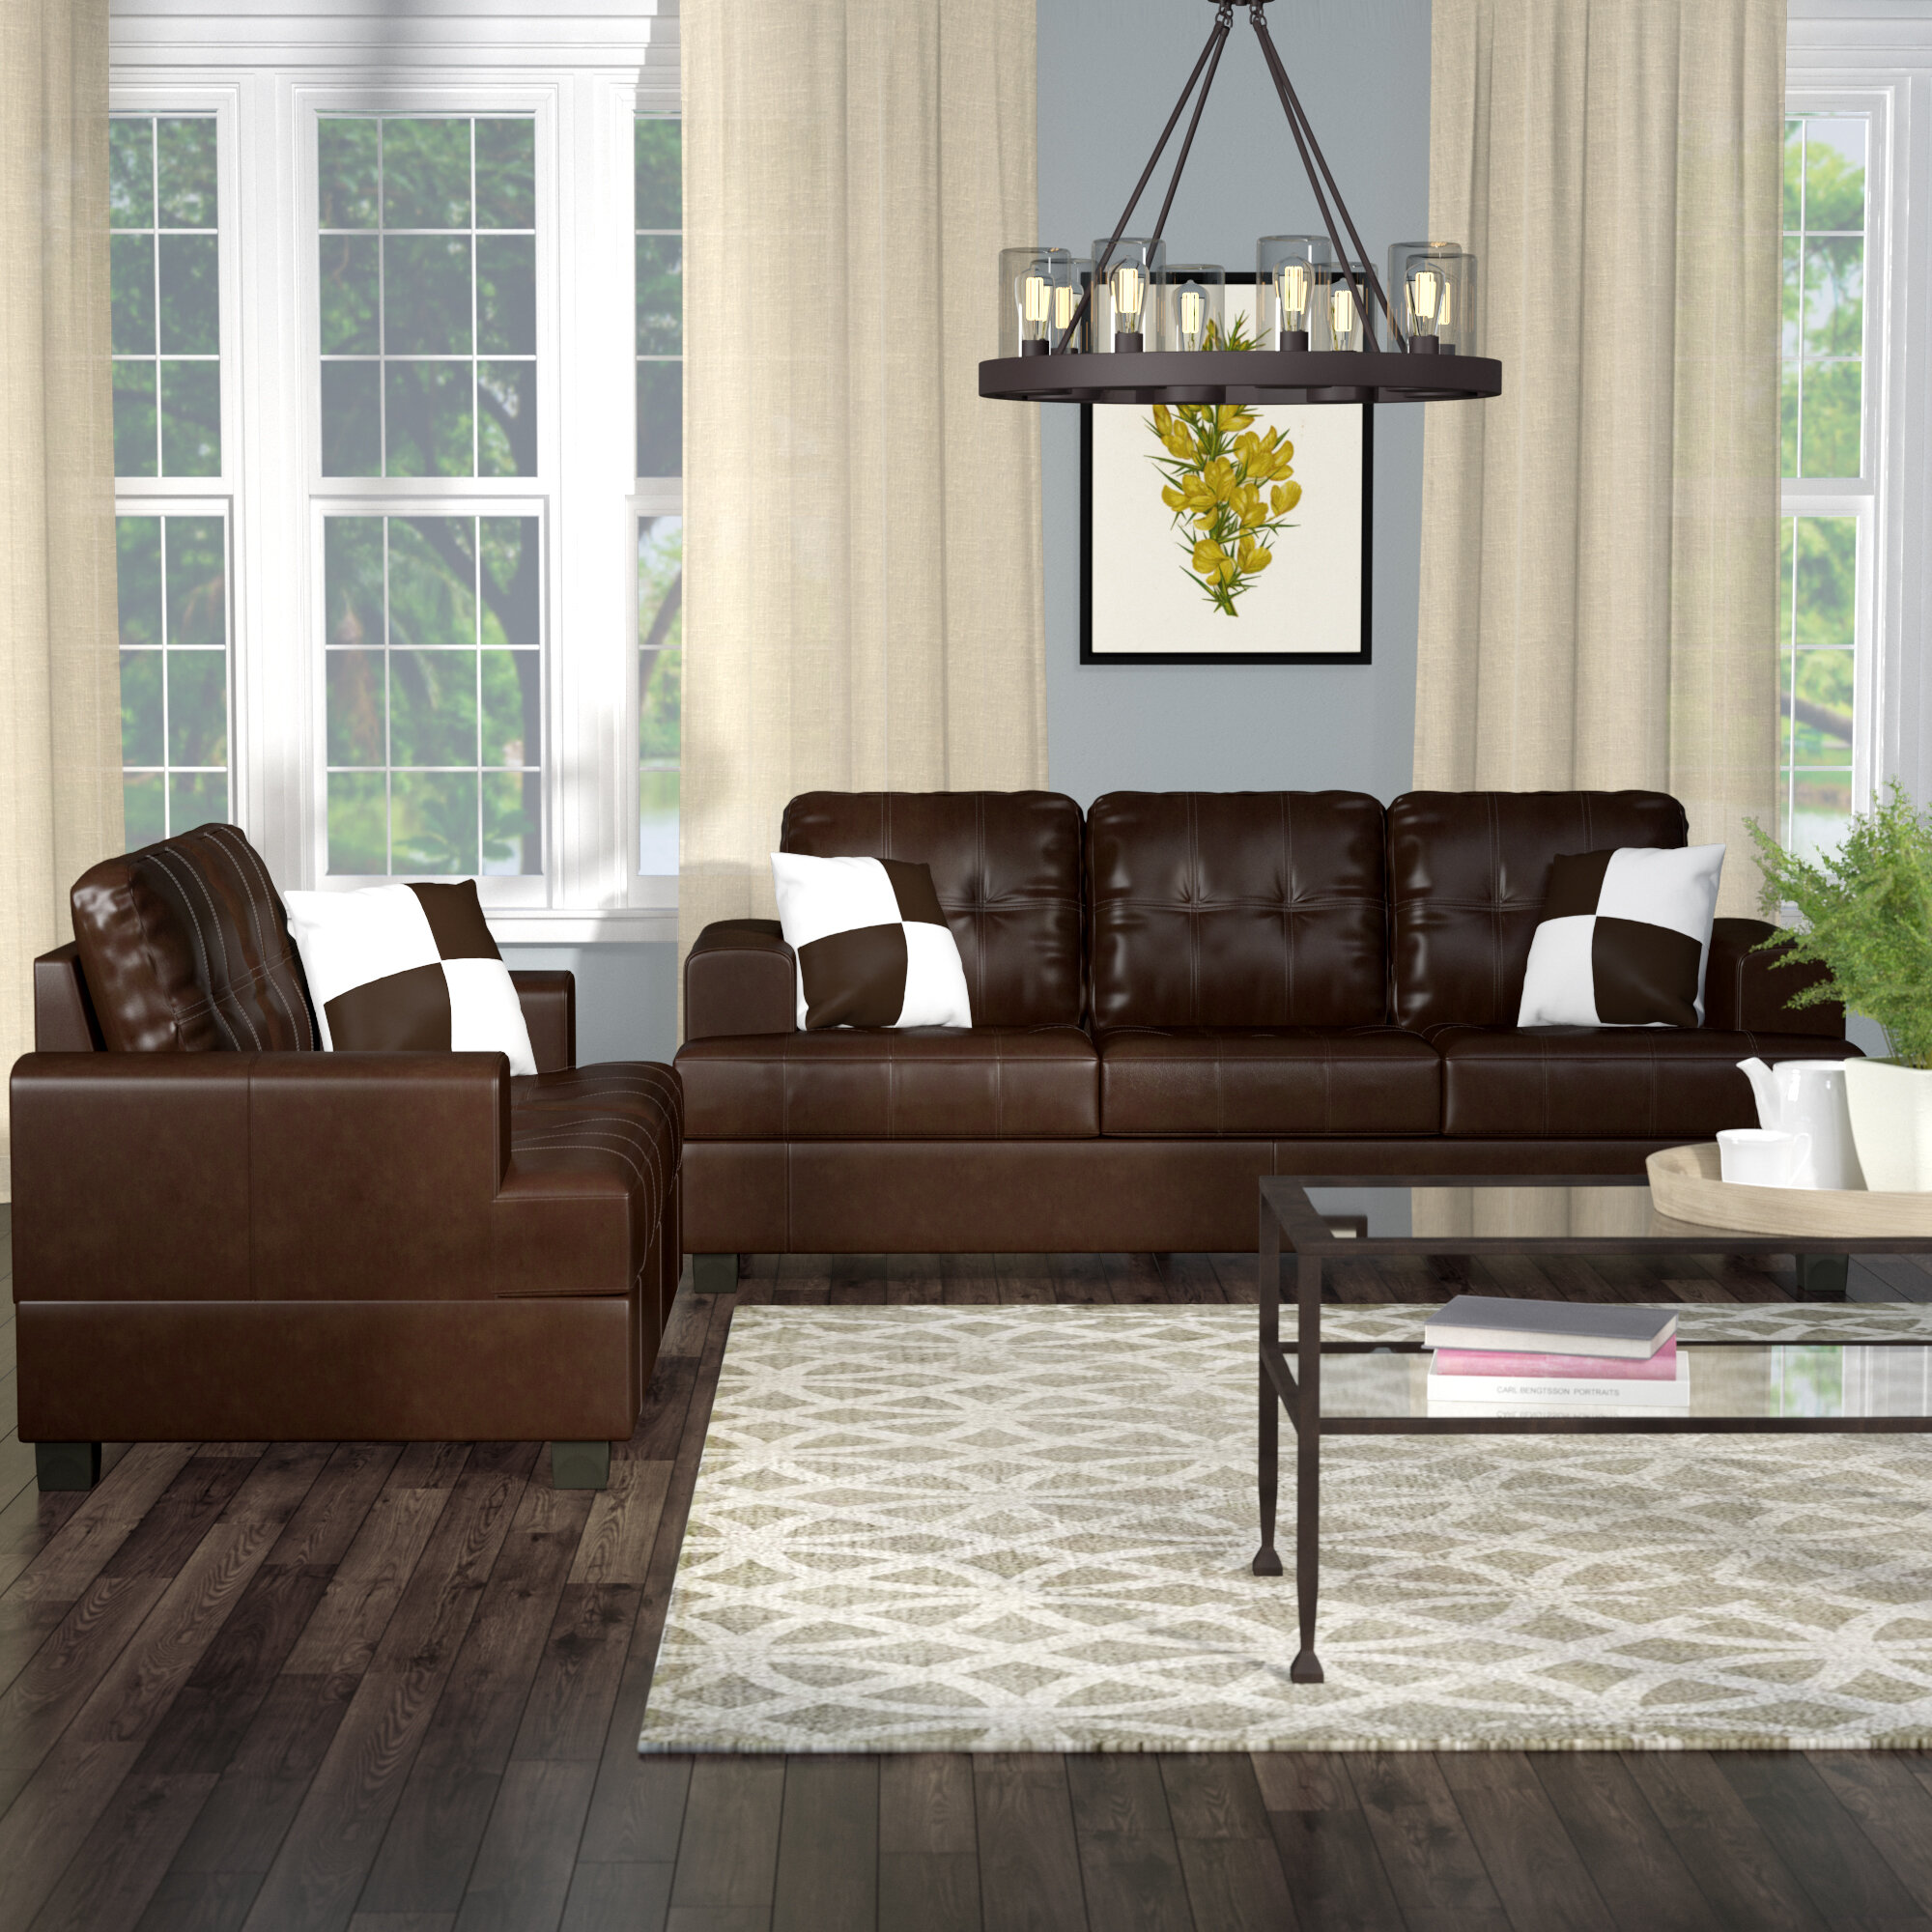 for ktrdecorcom view set living table room atg larger piece coffee l